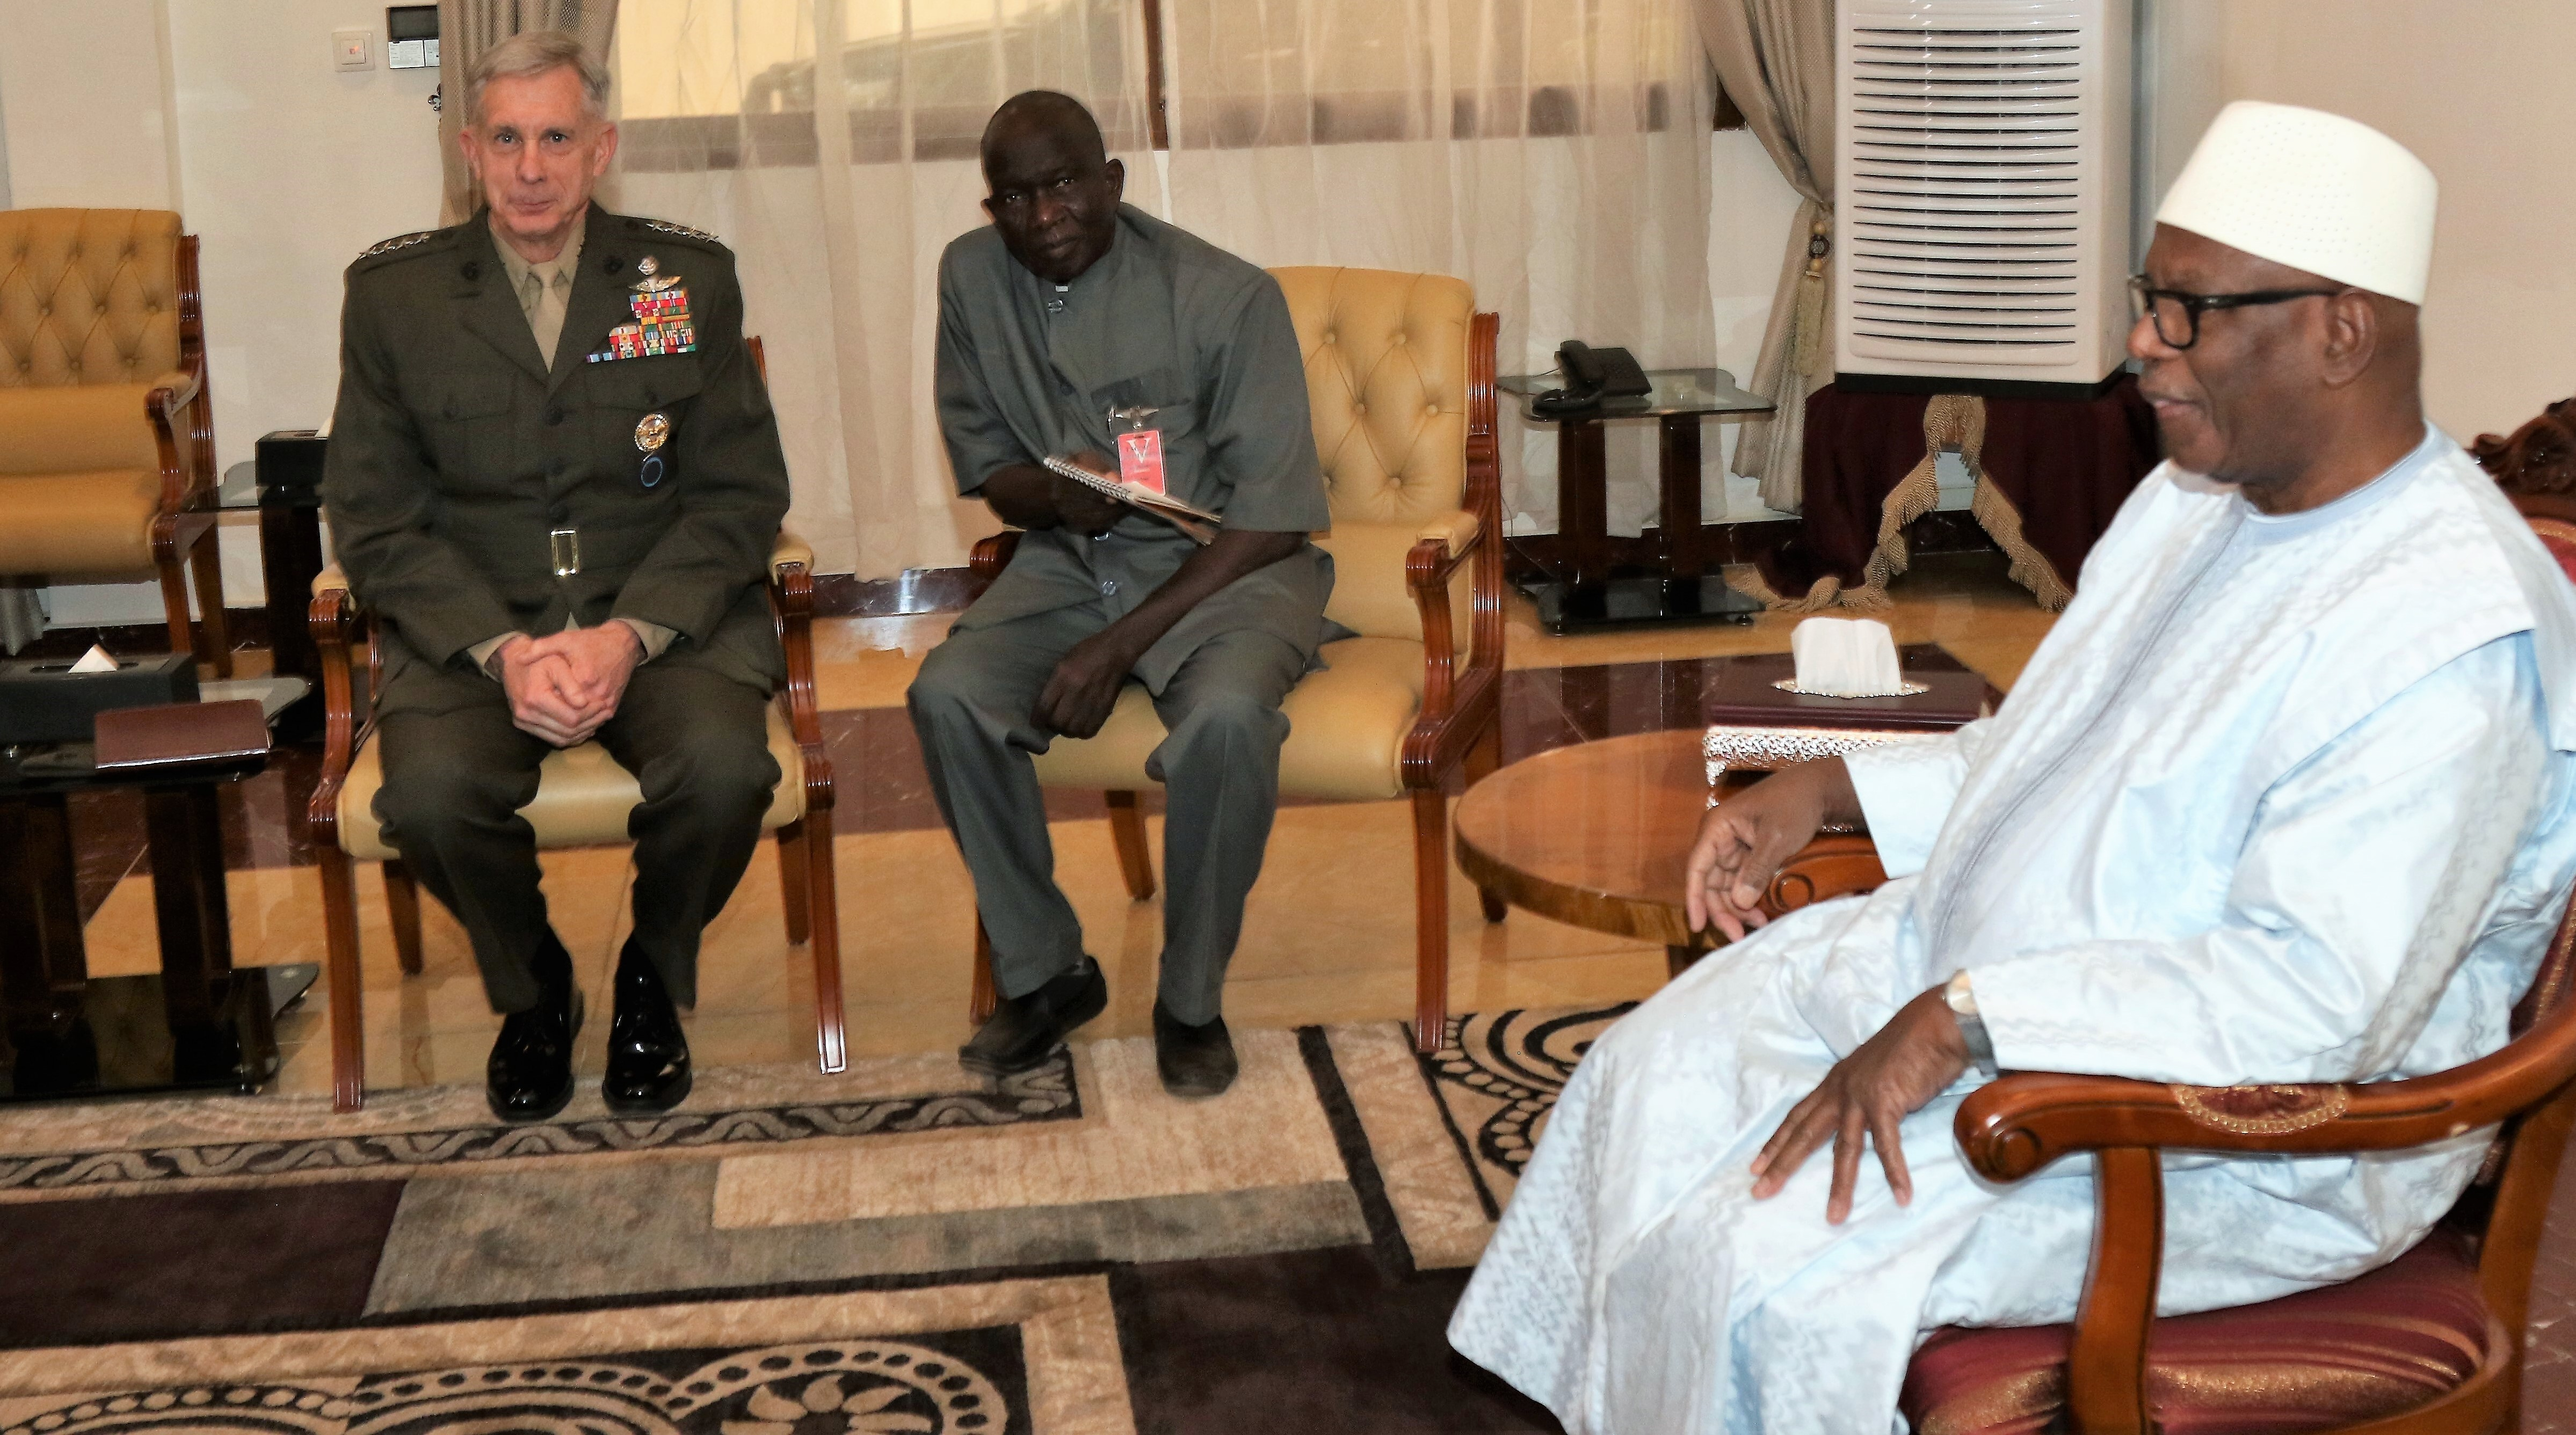 U.S. Marine Corps Gen. Thomas D. Waldhauser, commander, U.S. Africa Command meets with Malian President Ibrahim Keita Jan. 23, 2018 in Bamako, Mali. The leaders discussed defense and security cooperation as common goals. (U.S. AFRICOM photo by Nate Herring/Released)